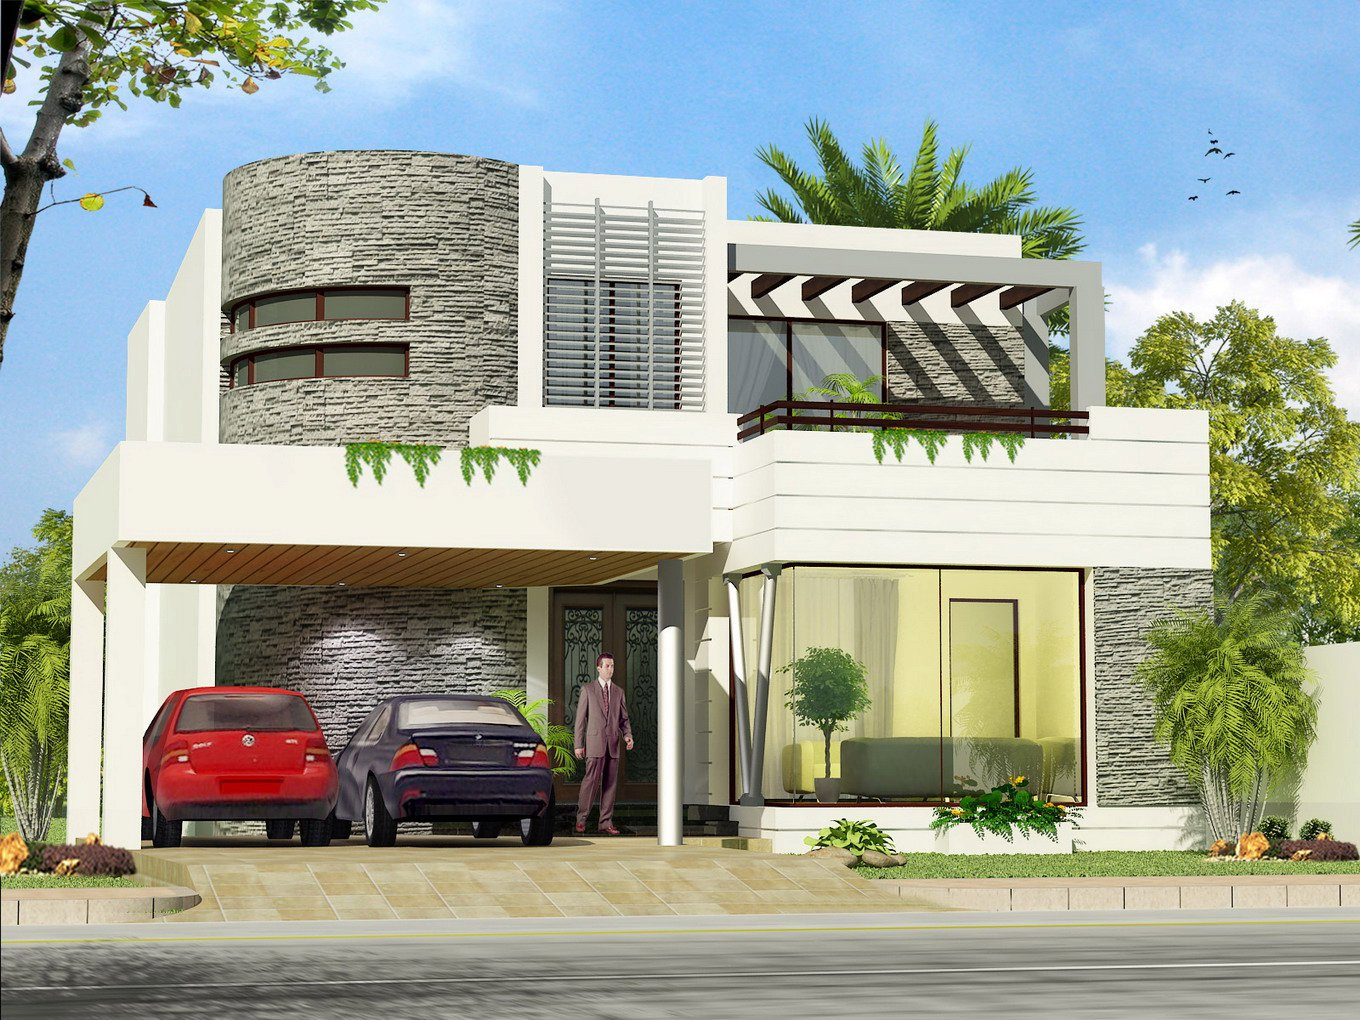 New home designs latest modern homes beautiful latest exterior homes designs Exterior home entrance design ideas